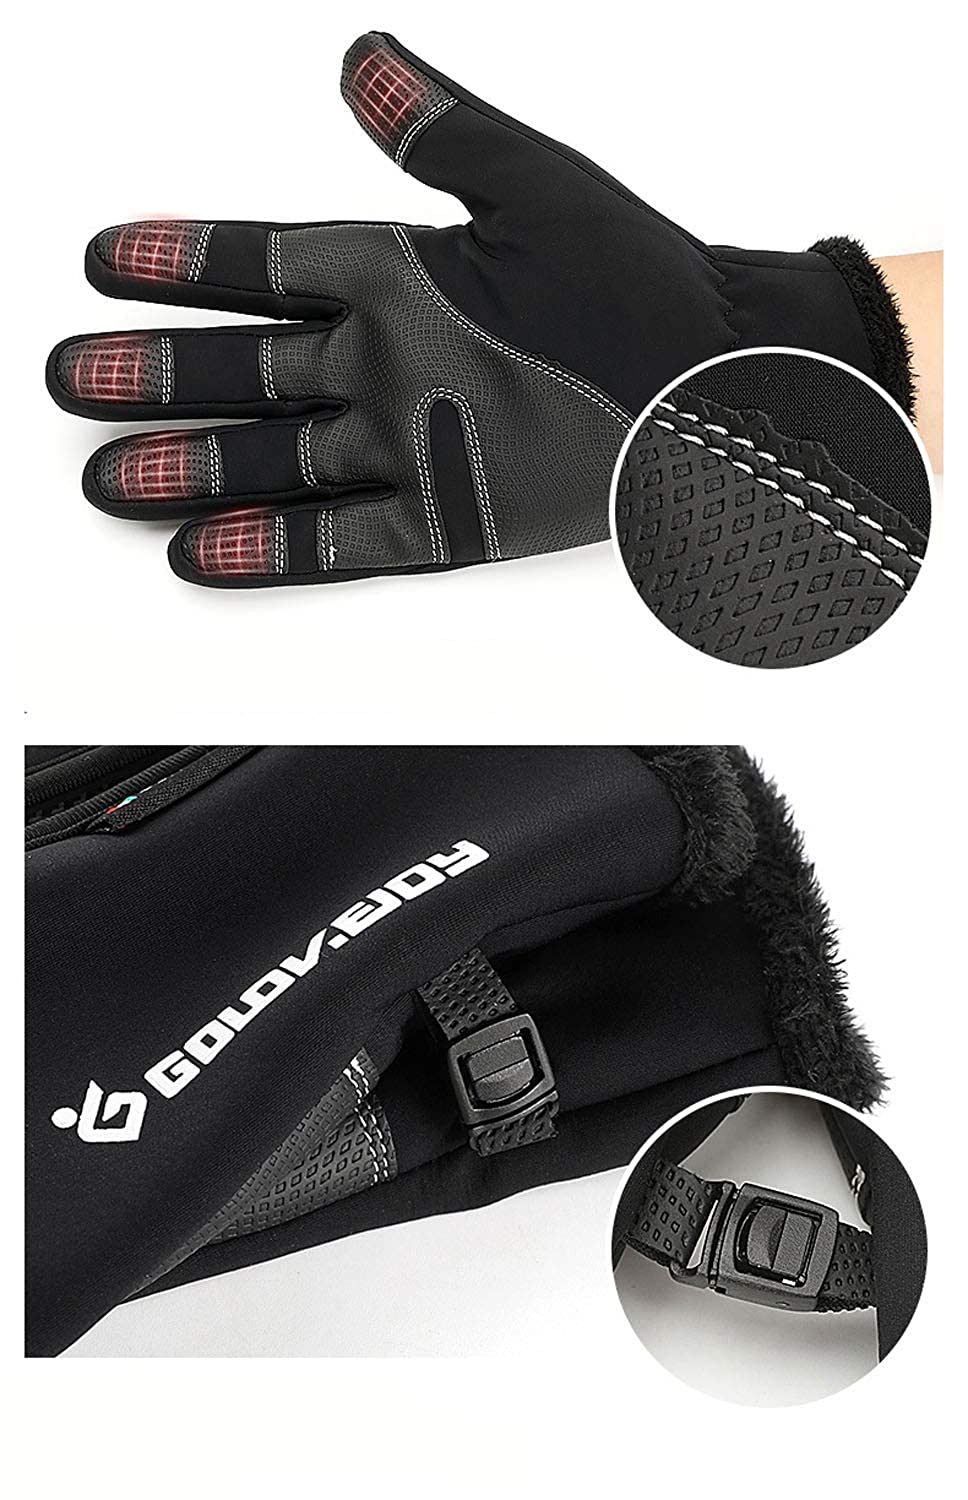 ChenZe Gloves Touch Screen Winter Warm Driving Thick Outdoor Sports Cold Weather